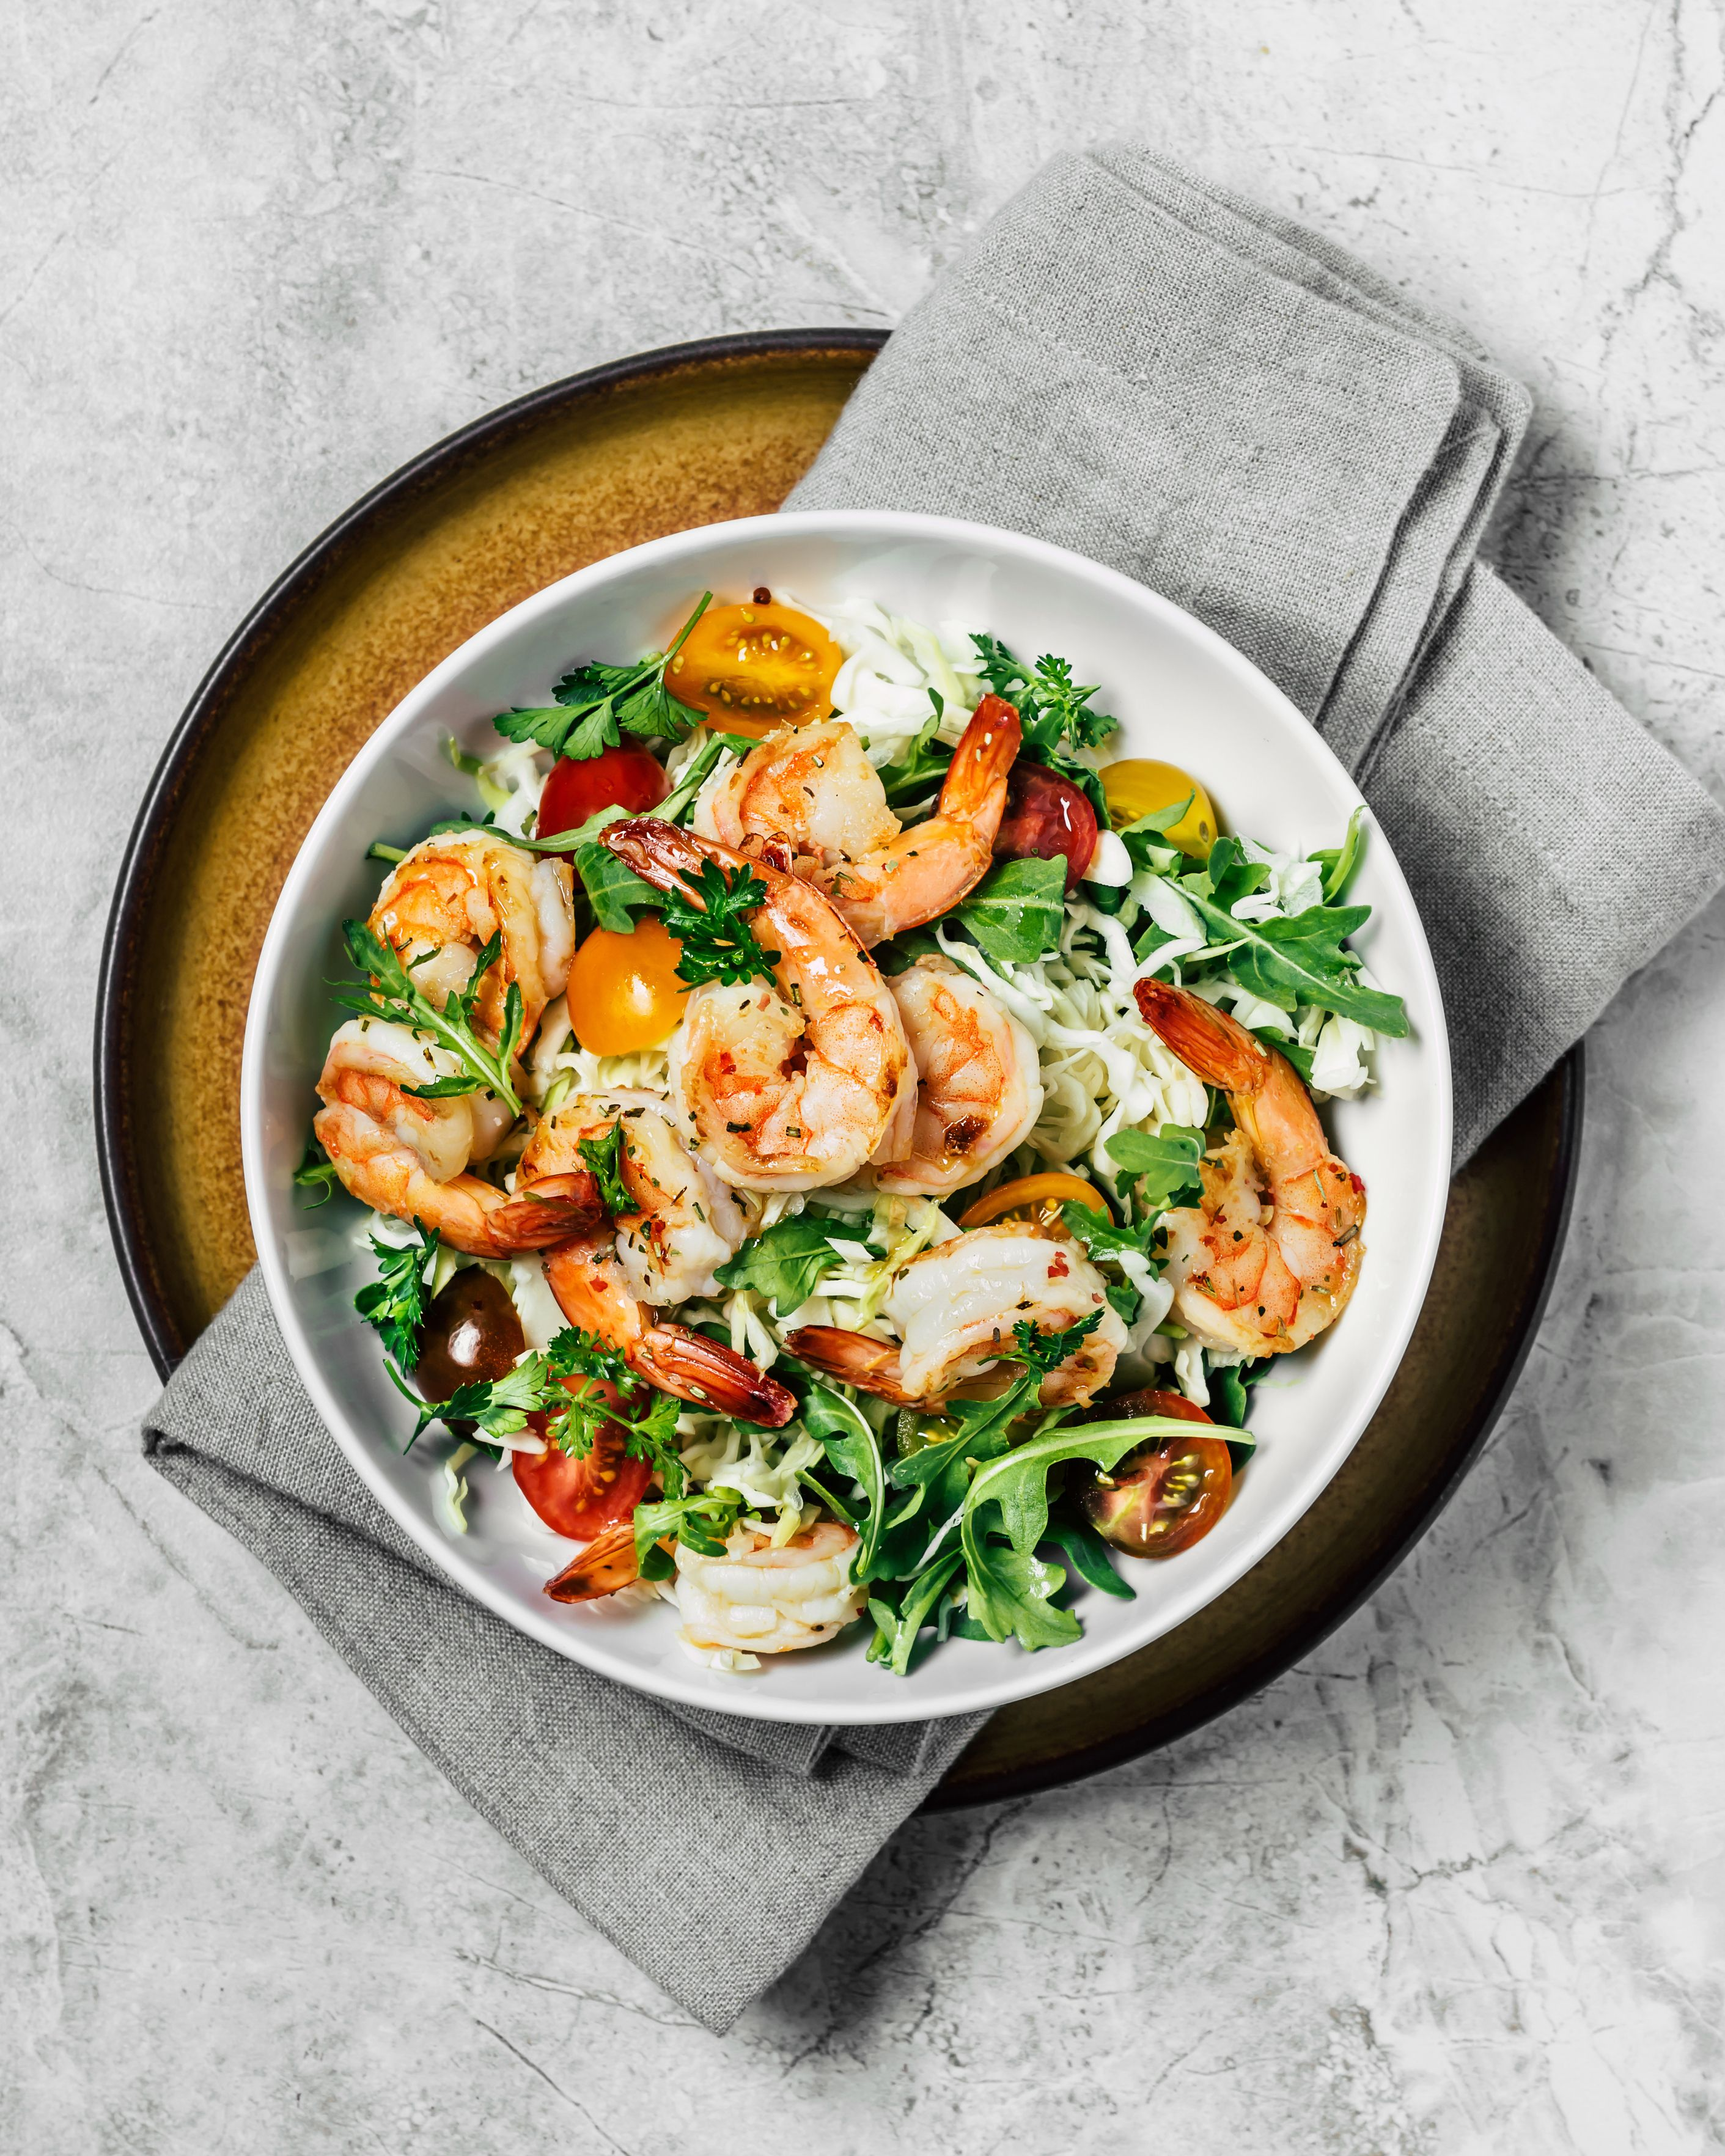 Free online diet plans for weight loss uk